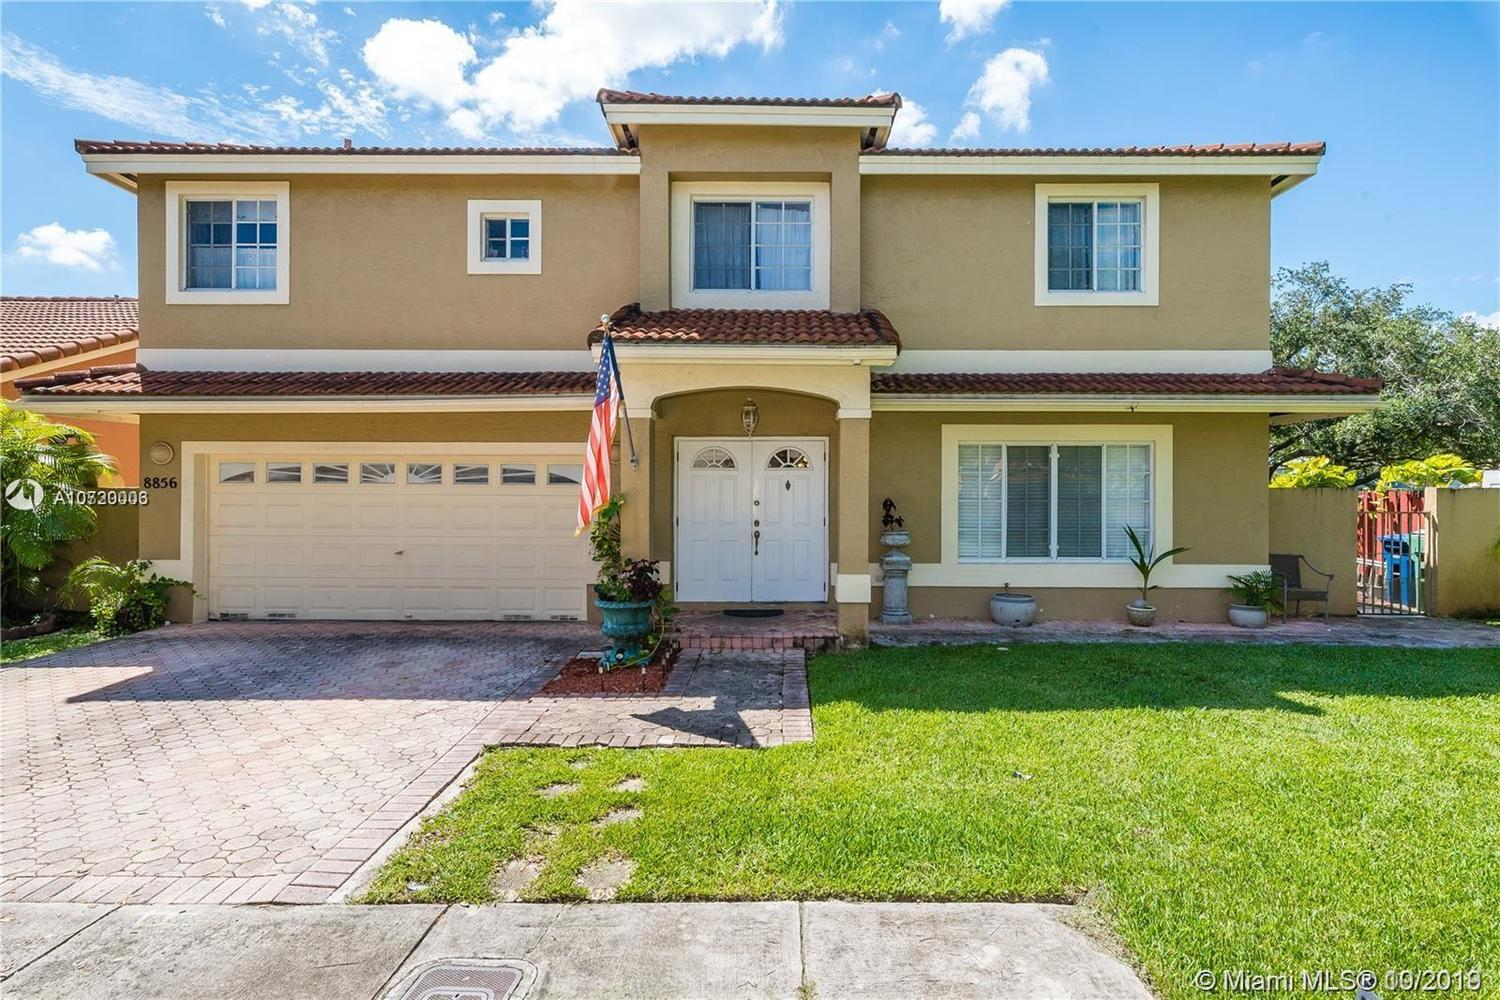 8856 Northwest 188th Street Hialeah, FL 33018